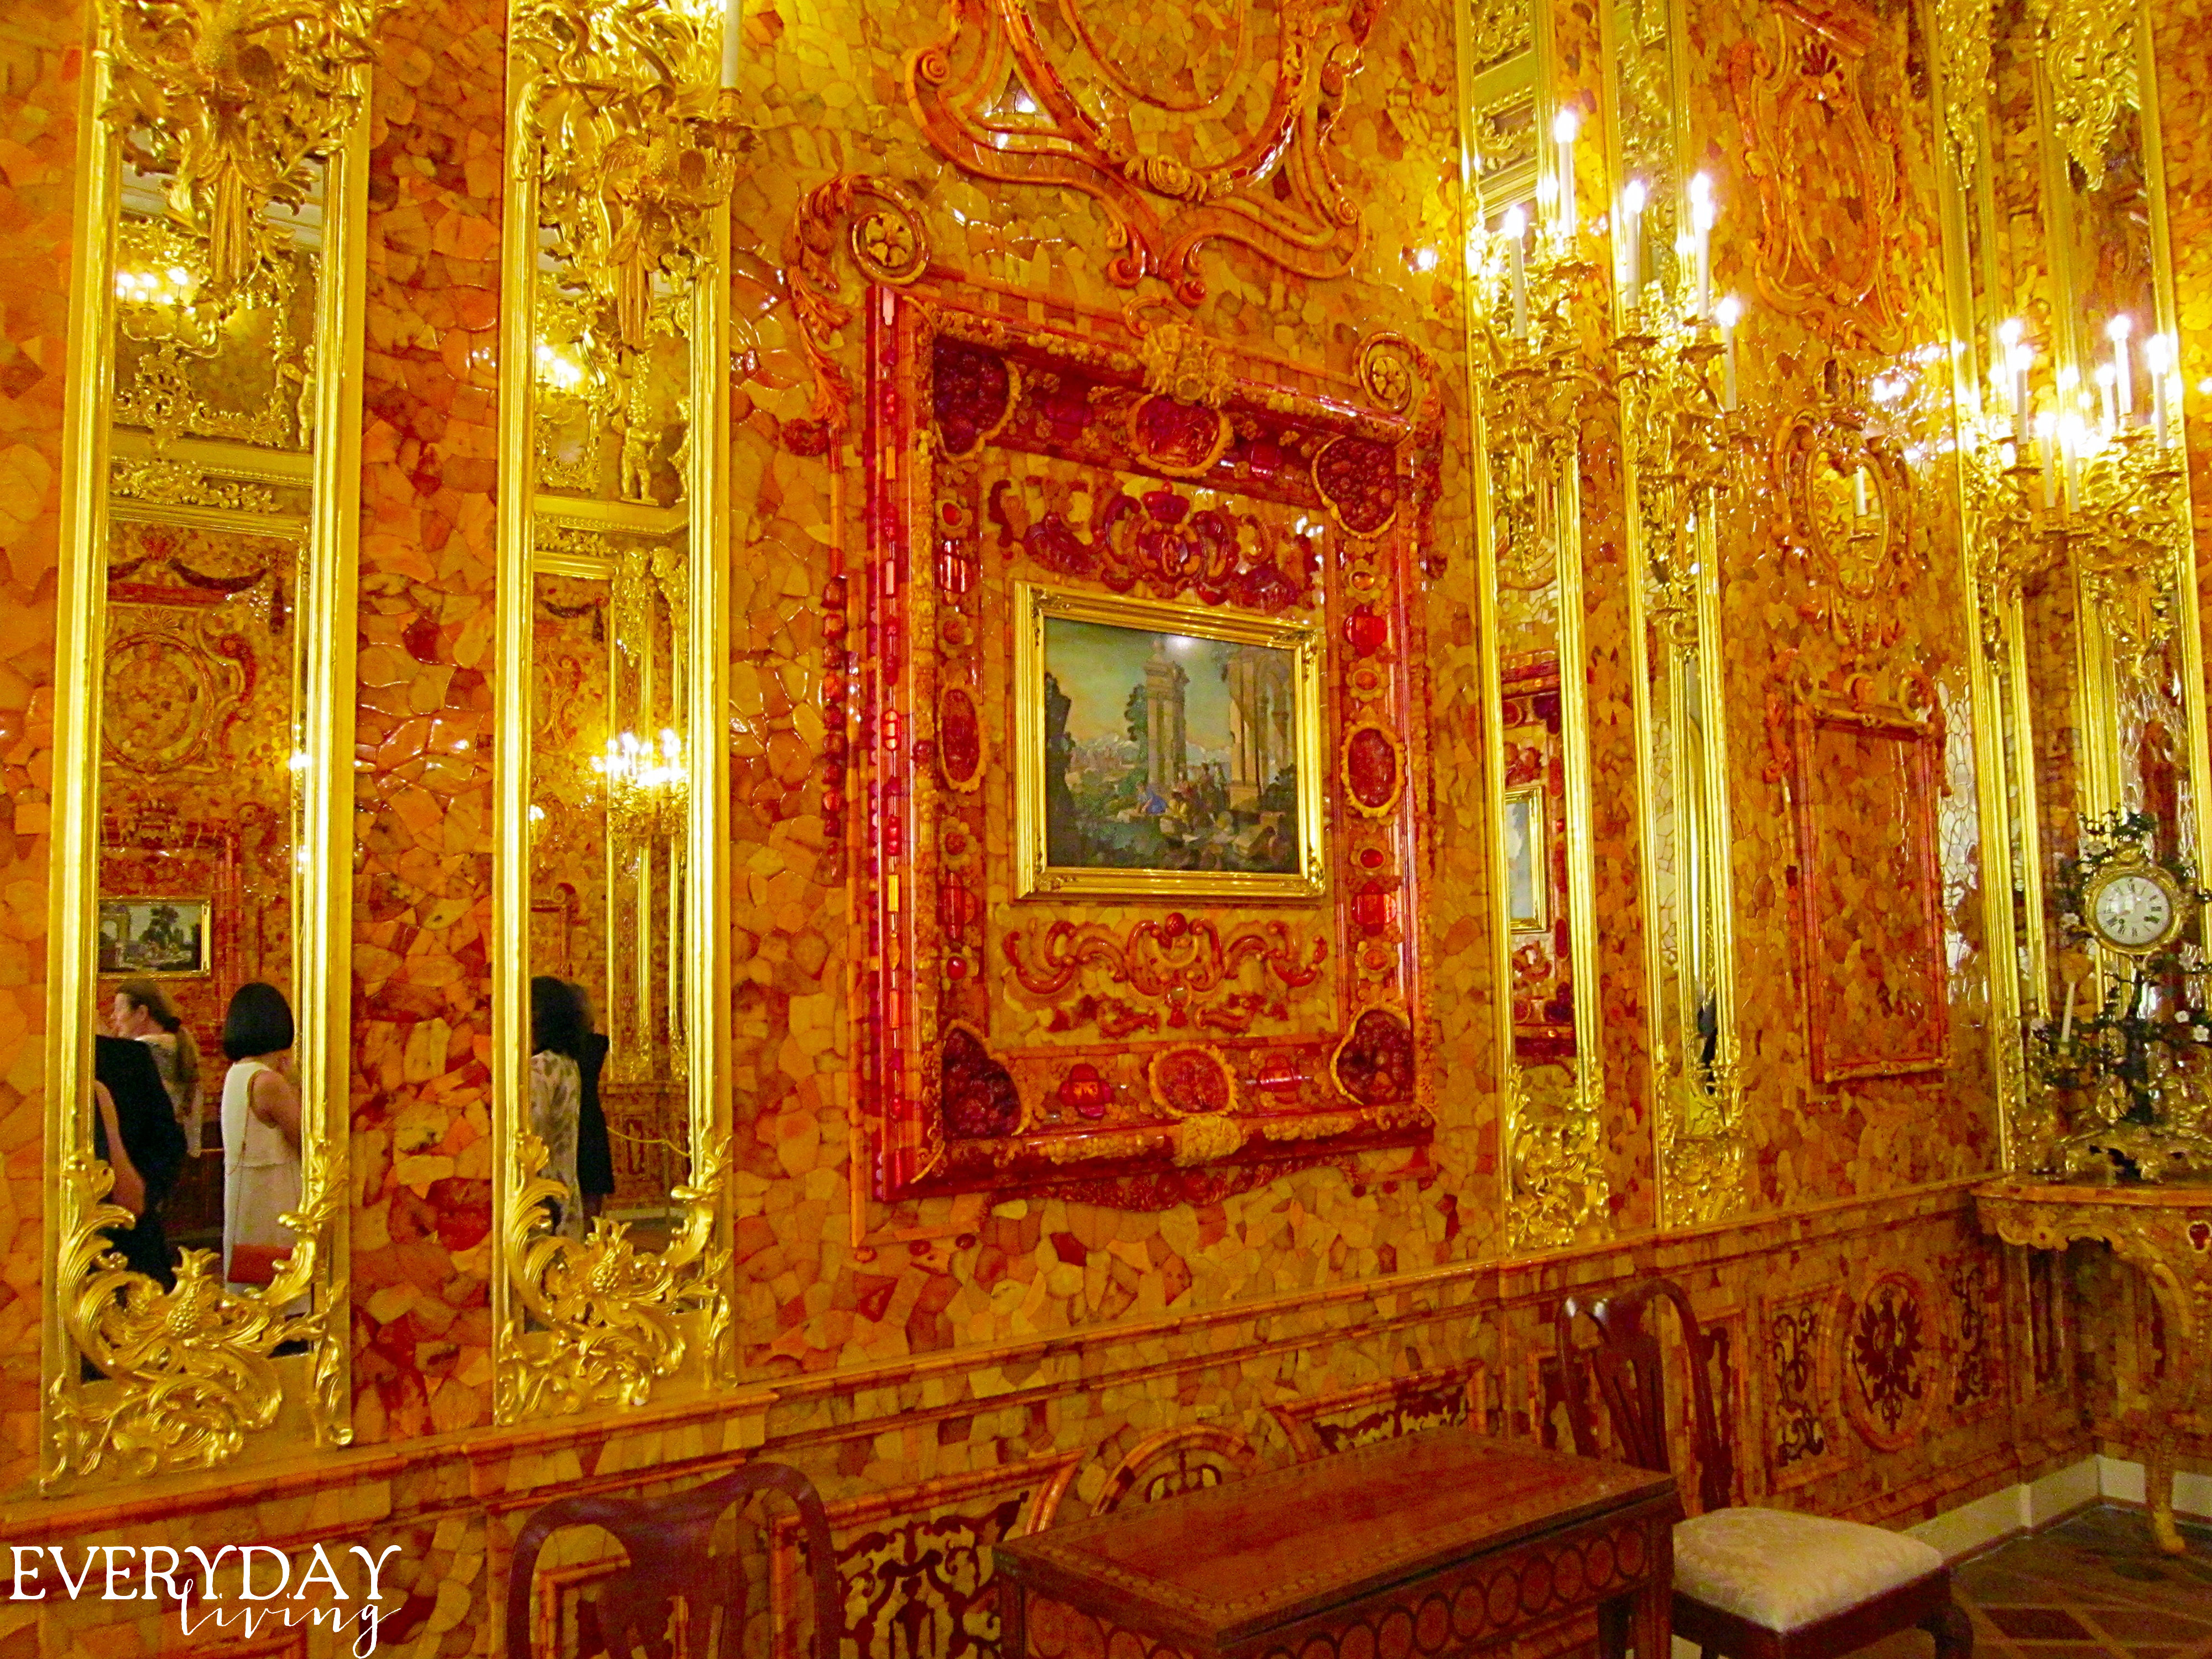 Castle Dining Room The Amber Room Everyday Living